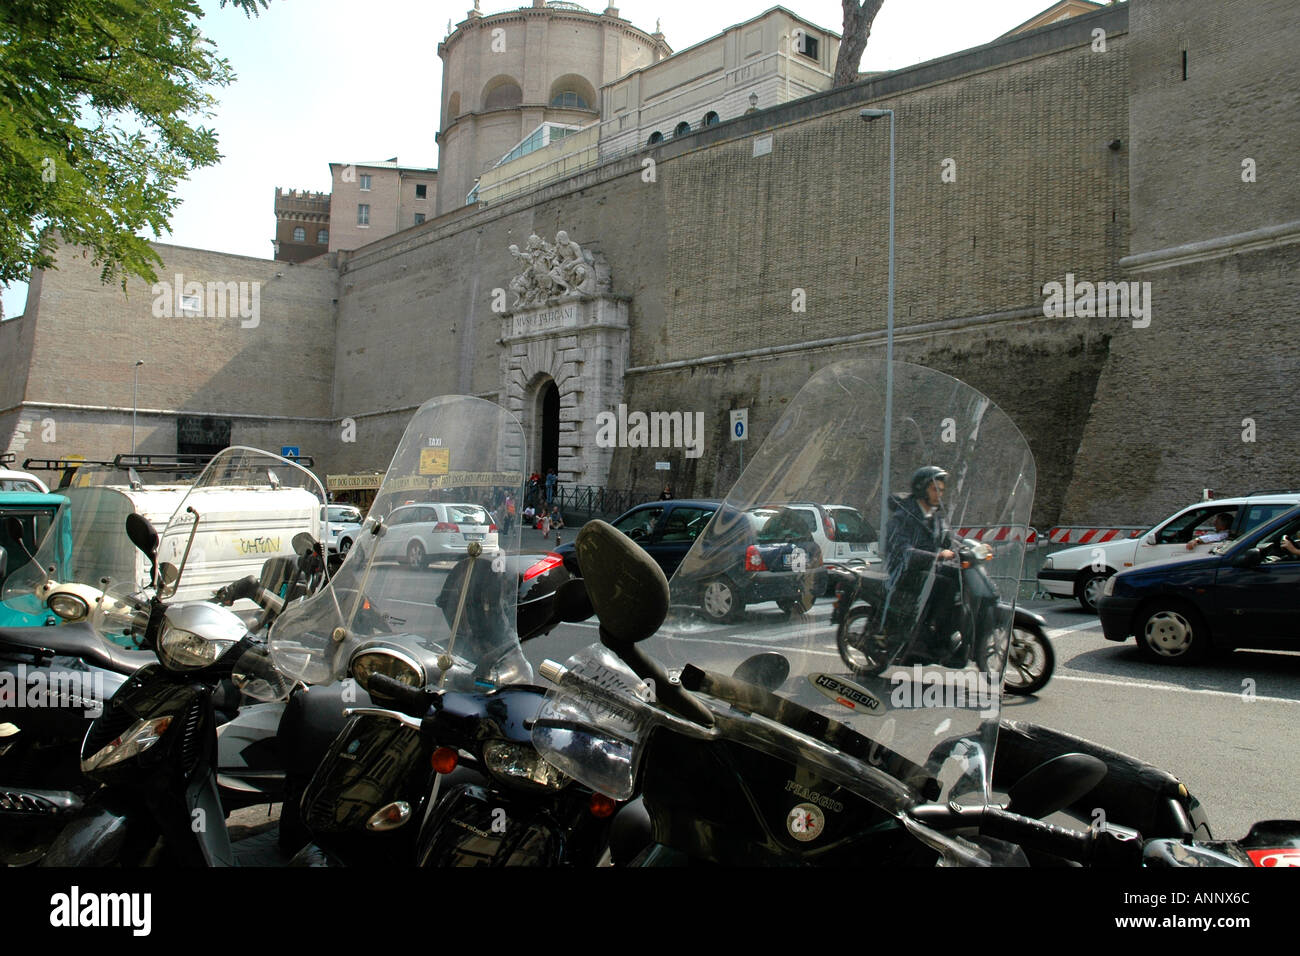 Scooters parked across the street from the highwalled Vatican City museums in Rome - Stock Image